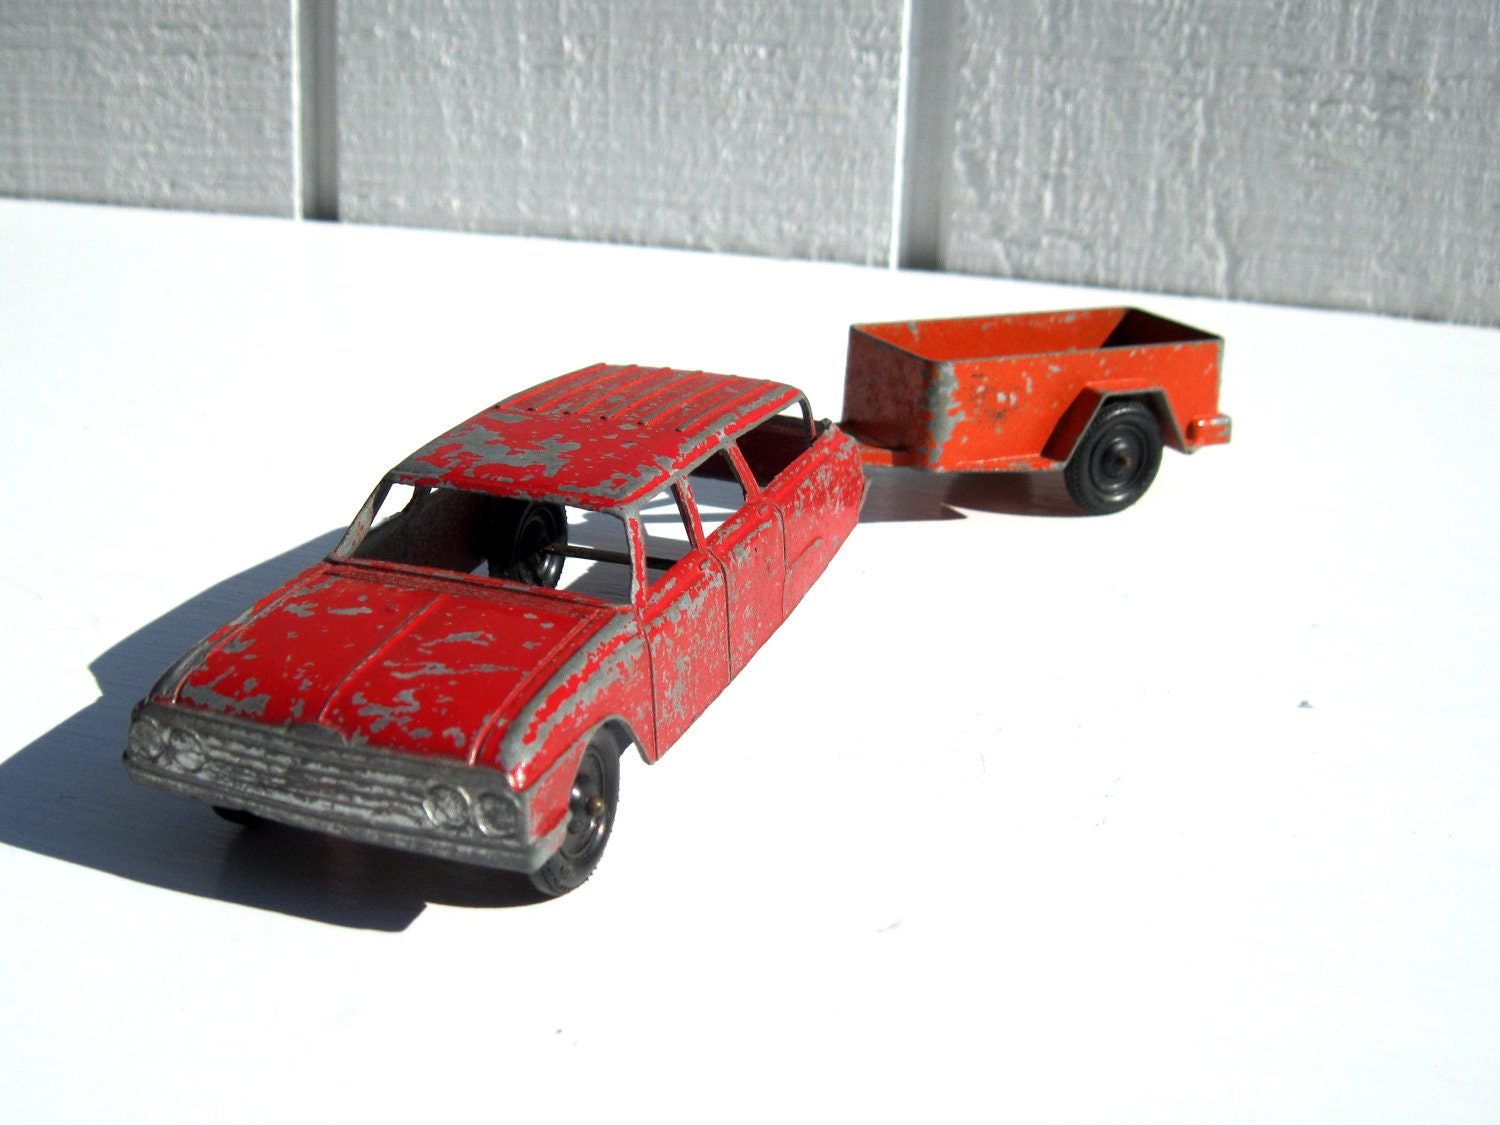 How Much Are Old Metal Toy Cars Worth